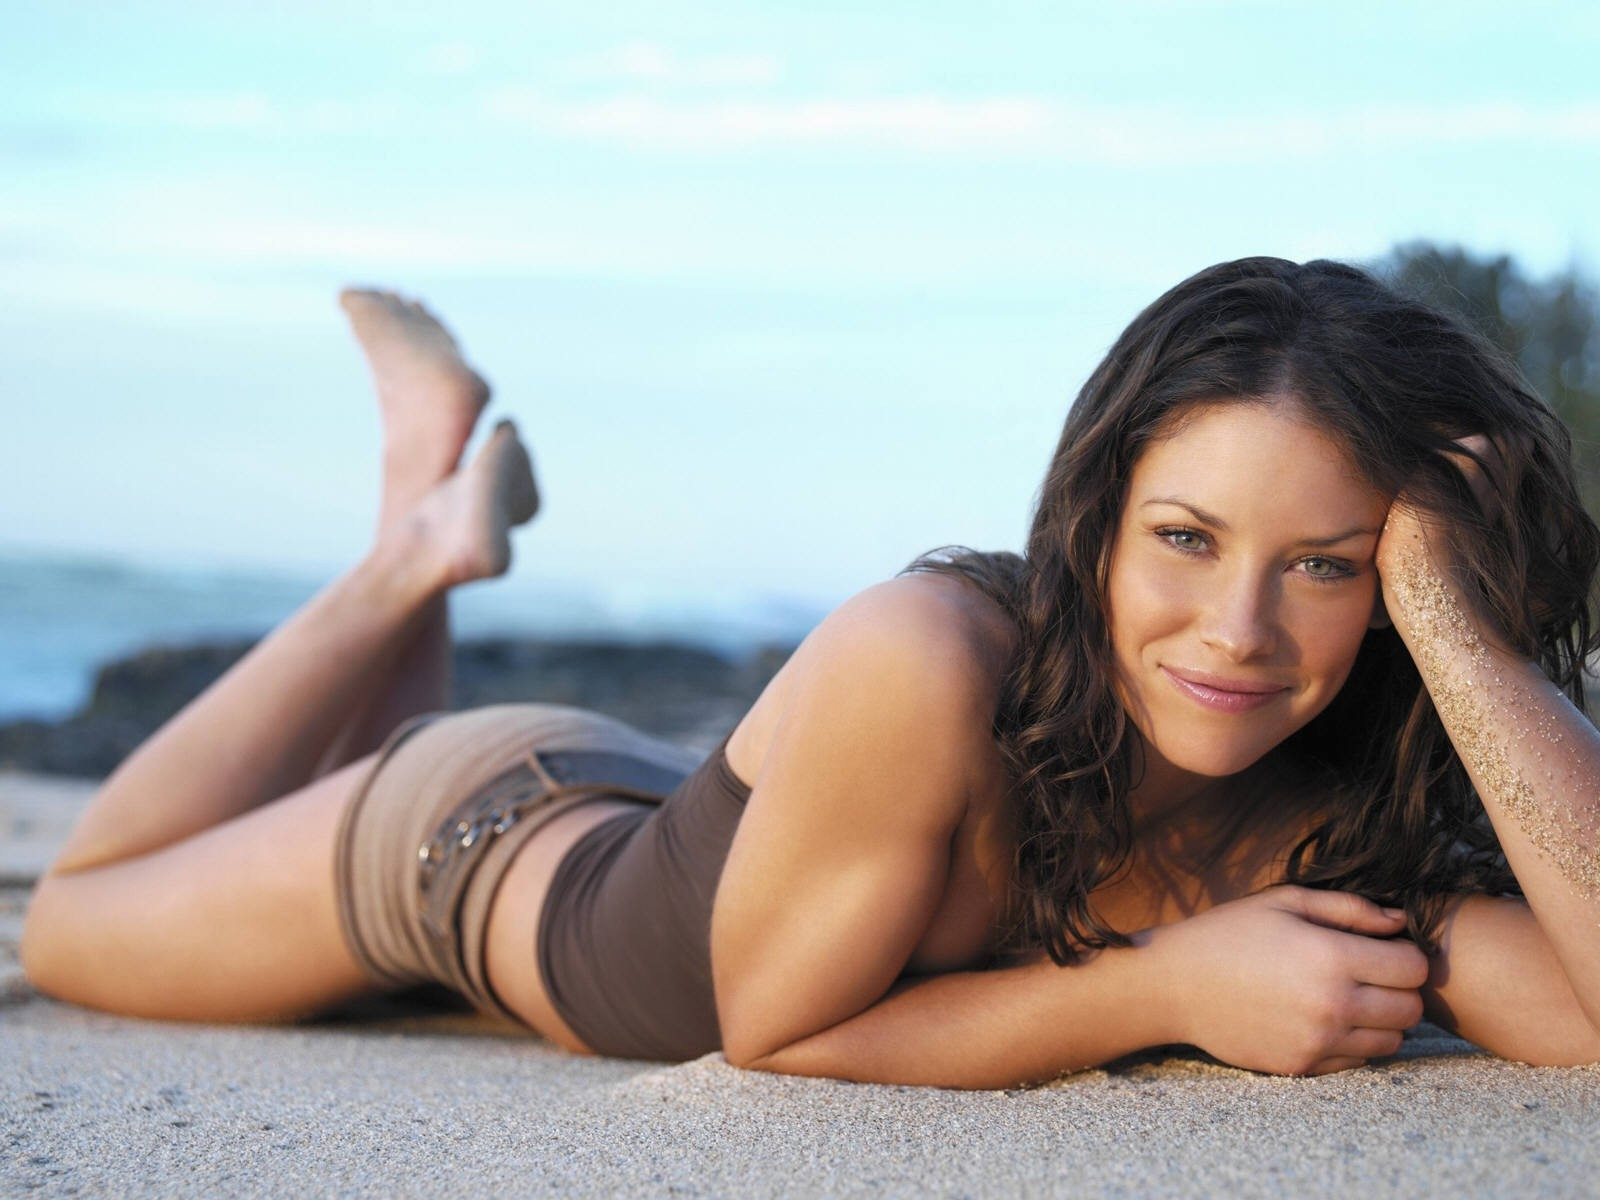 Wallpaper di Evangeline Lilly distesa sulla sabbia